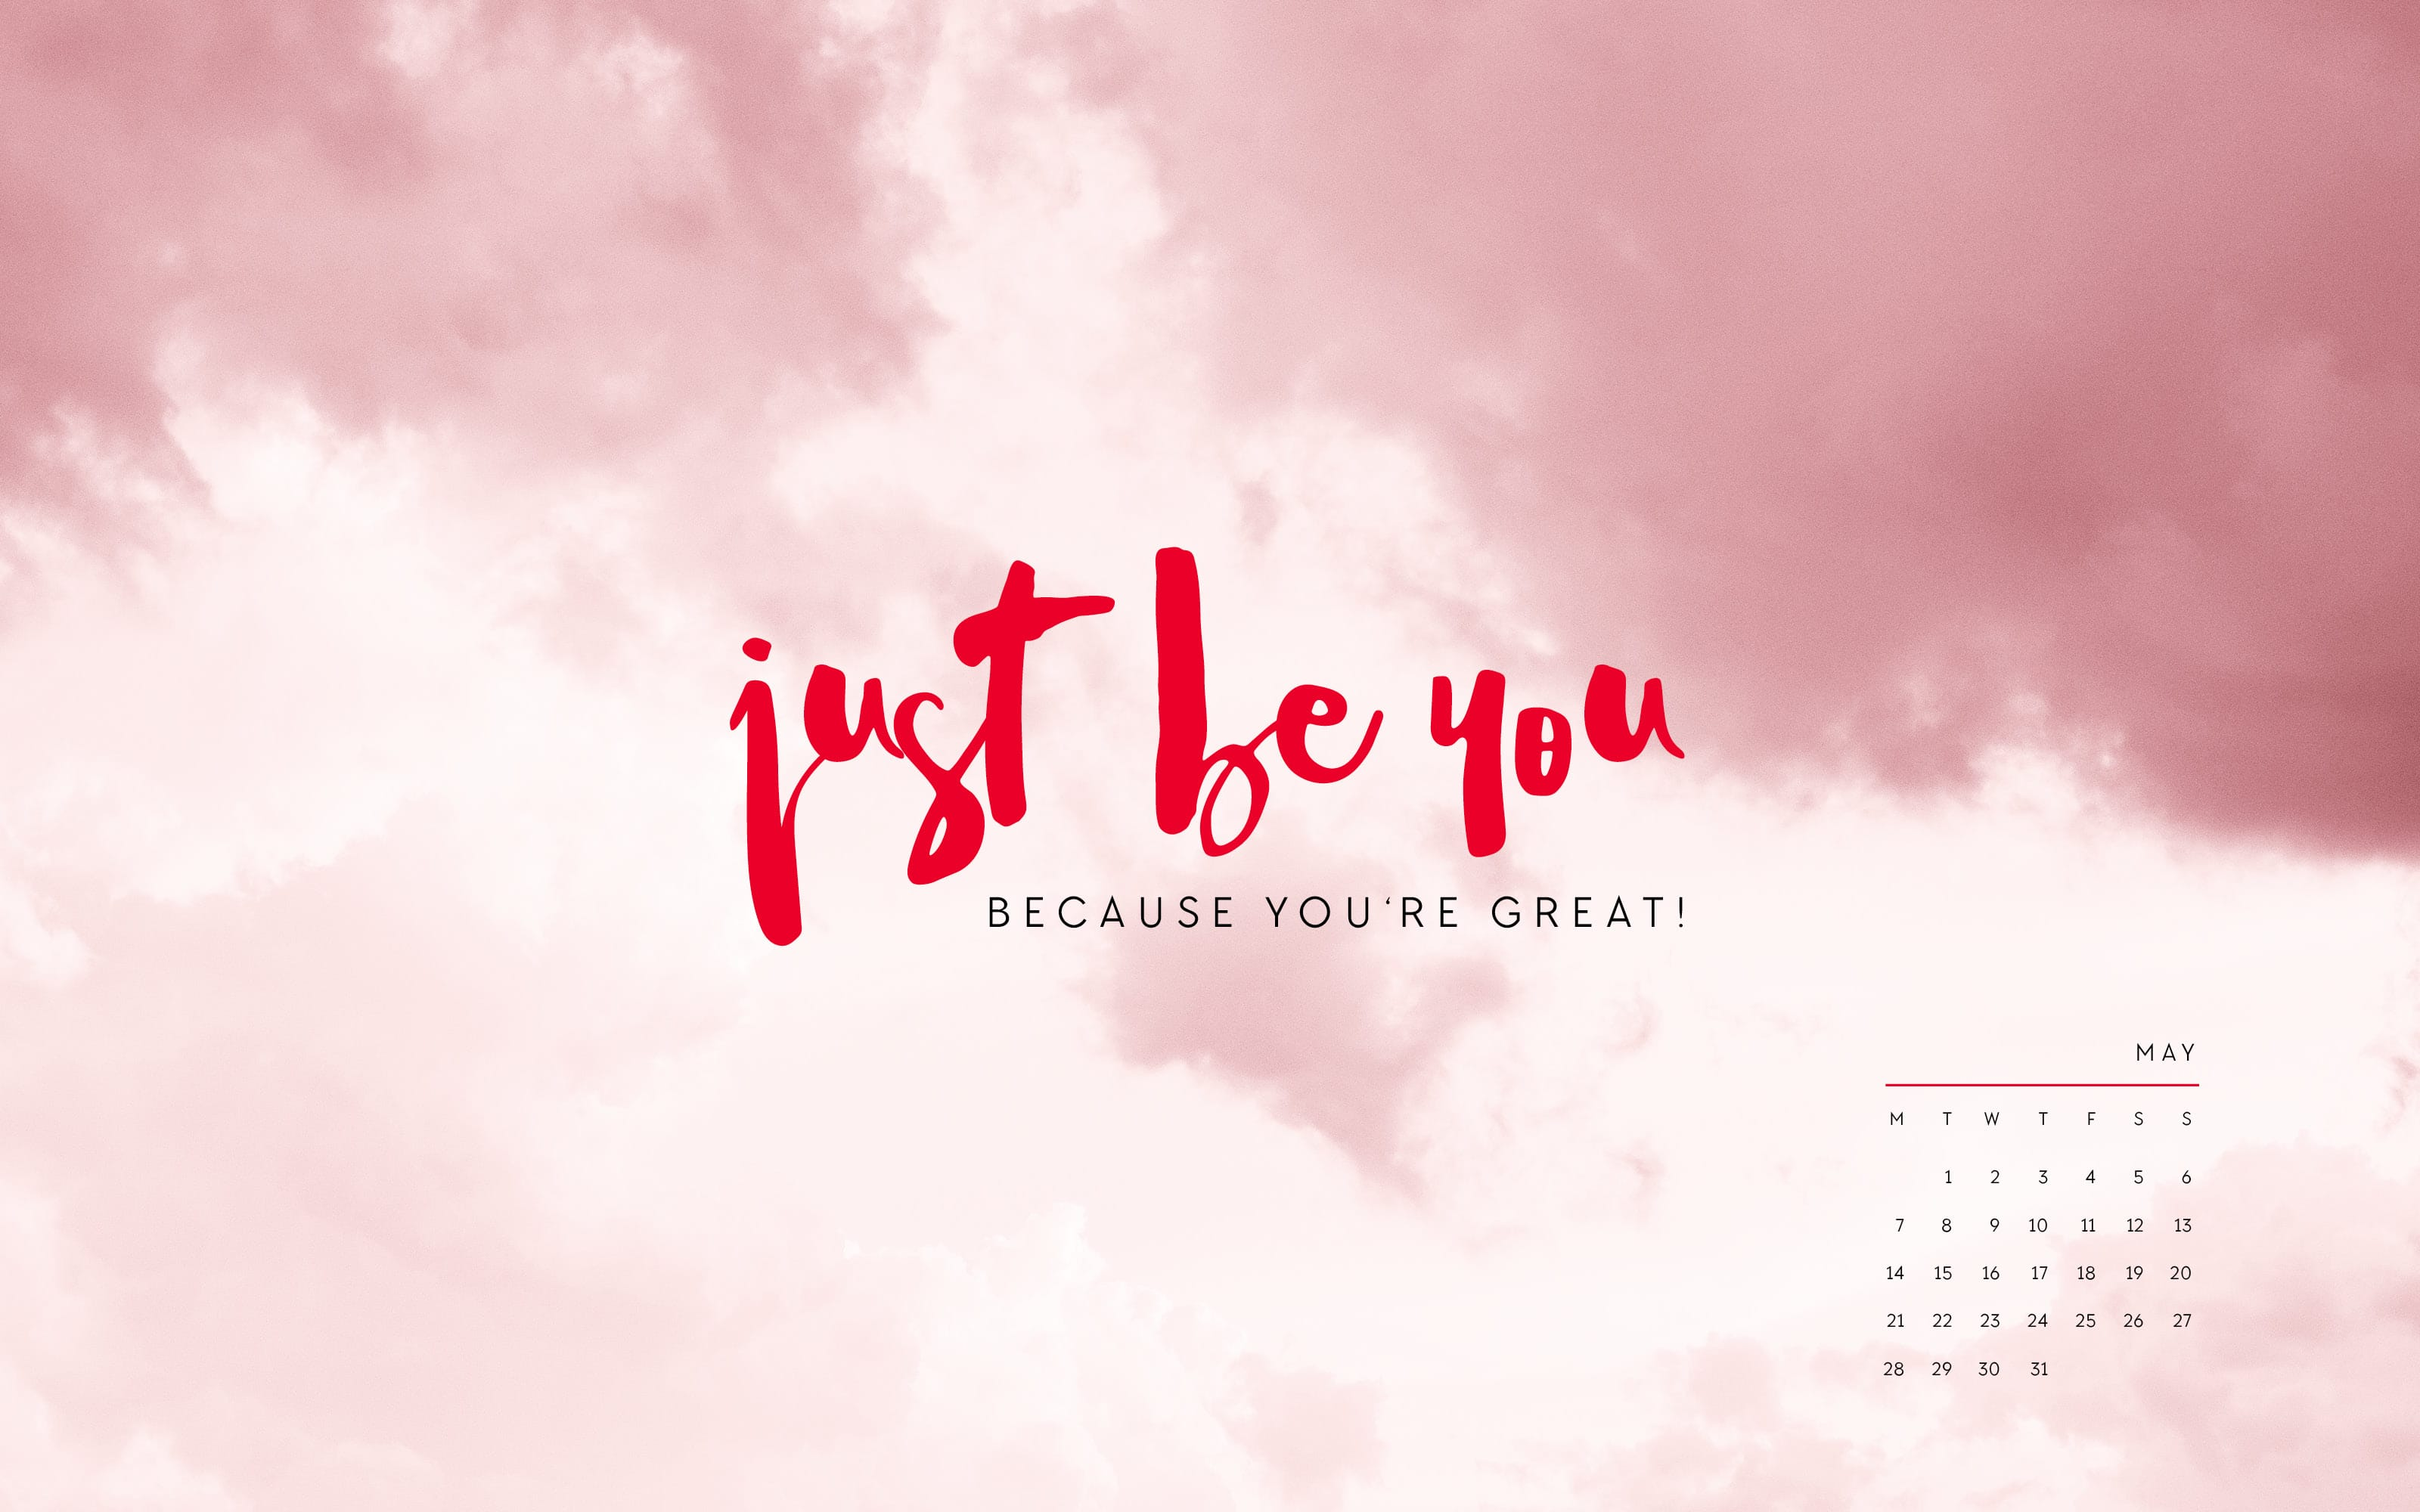 Inspirational May 2019 Desktop Calendar